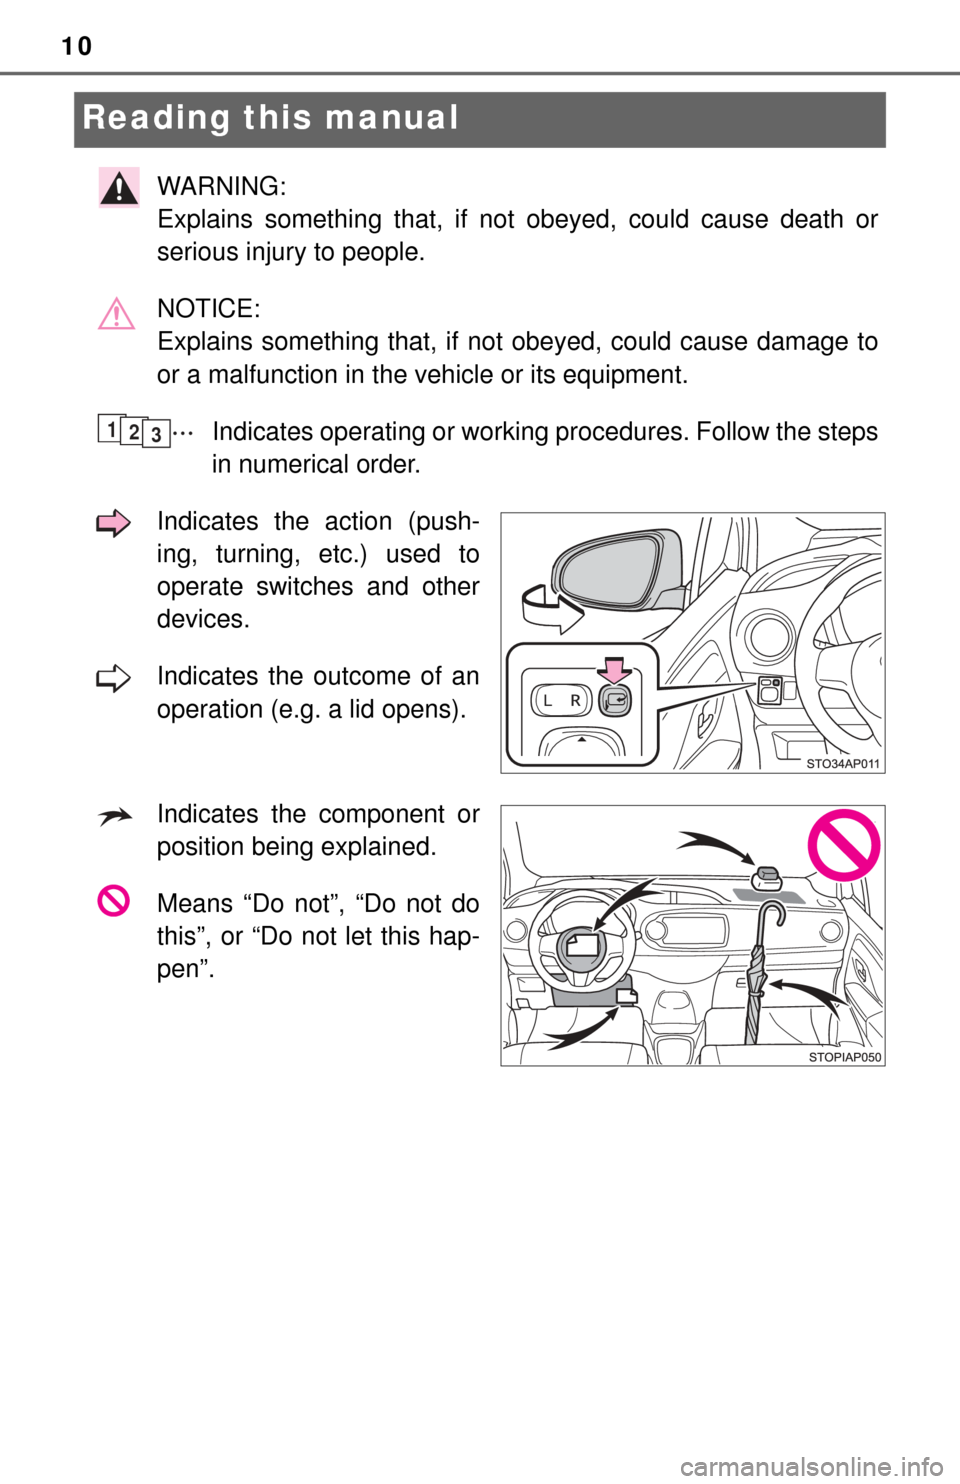 TOYOTA YARIS 2017 3.G Owners Manual 10 Reading this manual WARNING:  Explains something that, if not obeyed, could cause death or serious injury to people. NOTICE:  Explains something that, if not obeyed, could cause damage to or a malf